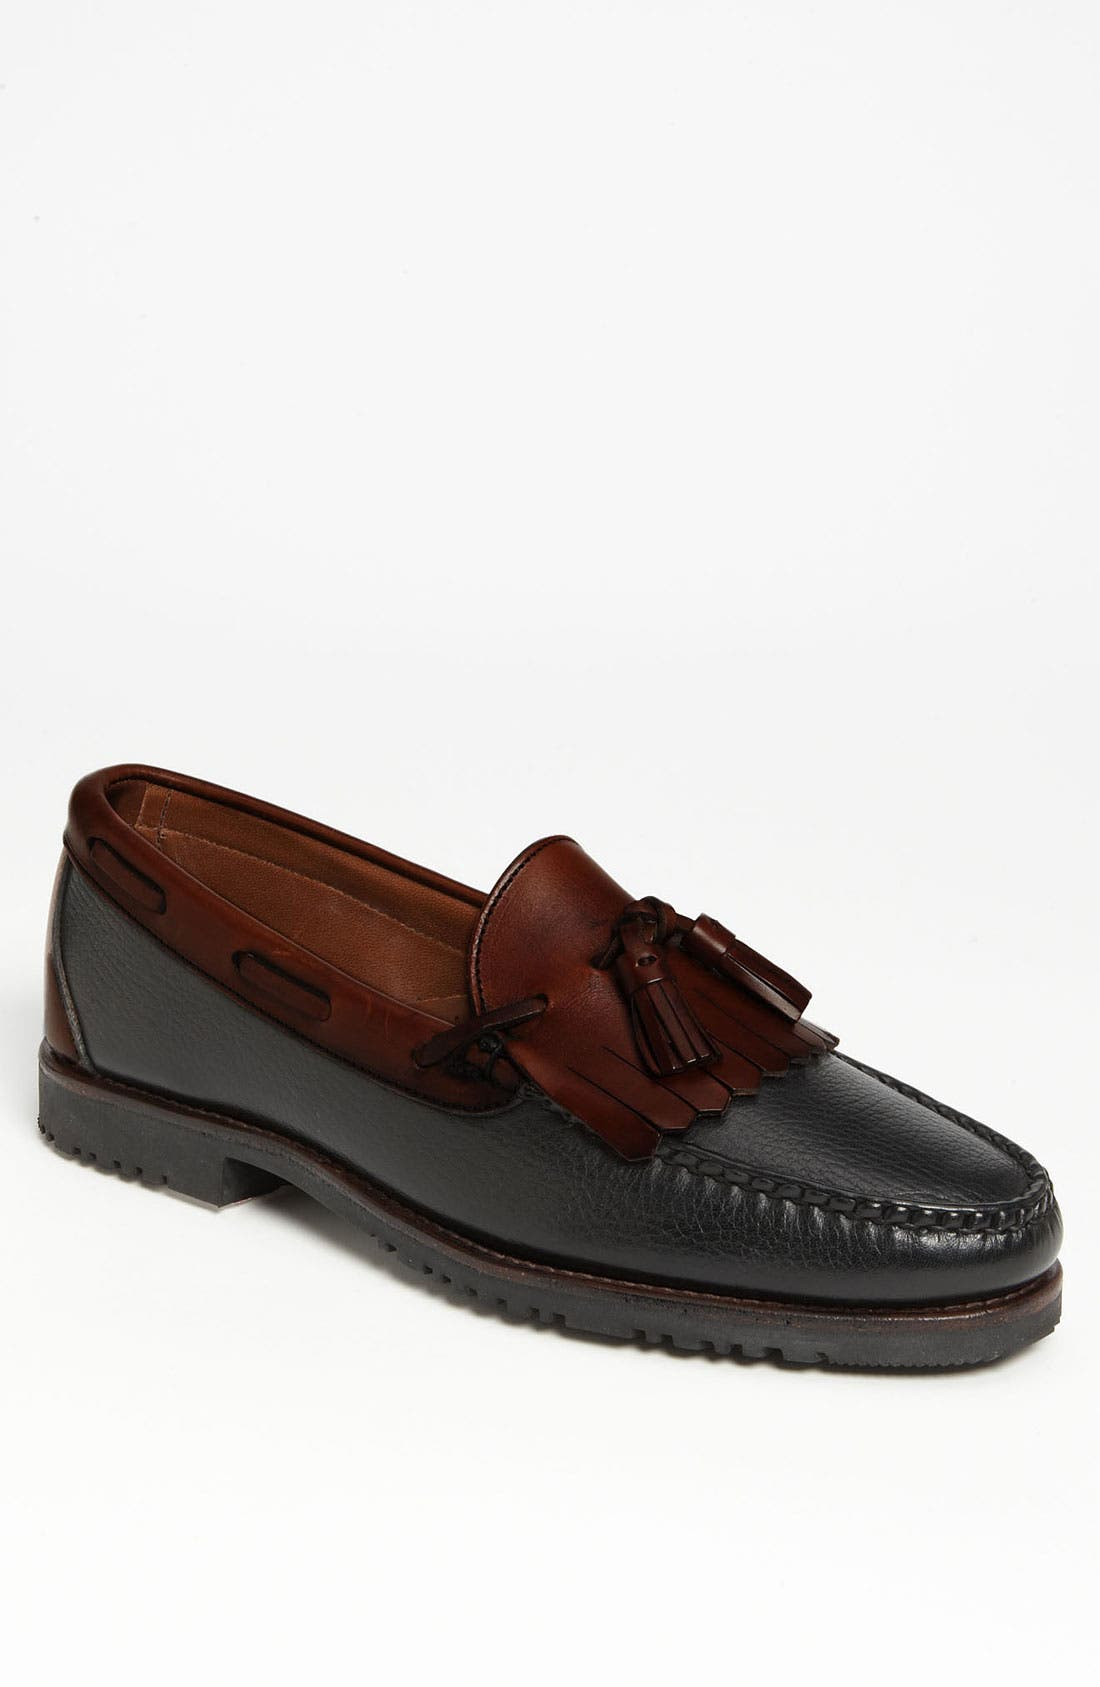 Alternate Image 1 Selected - Allen Edmonds 'Nashua' Tassel Loafer (Men)